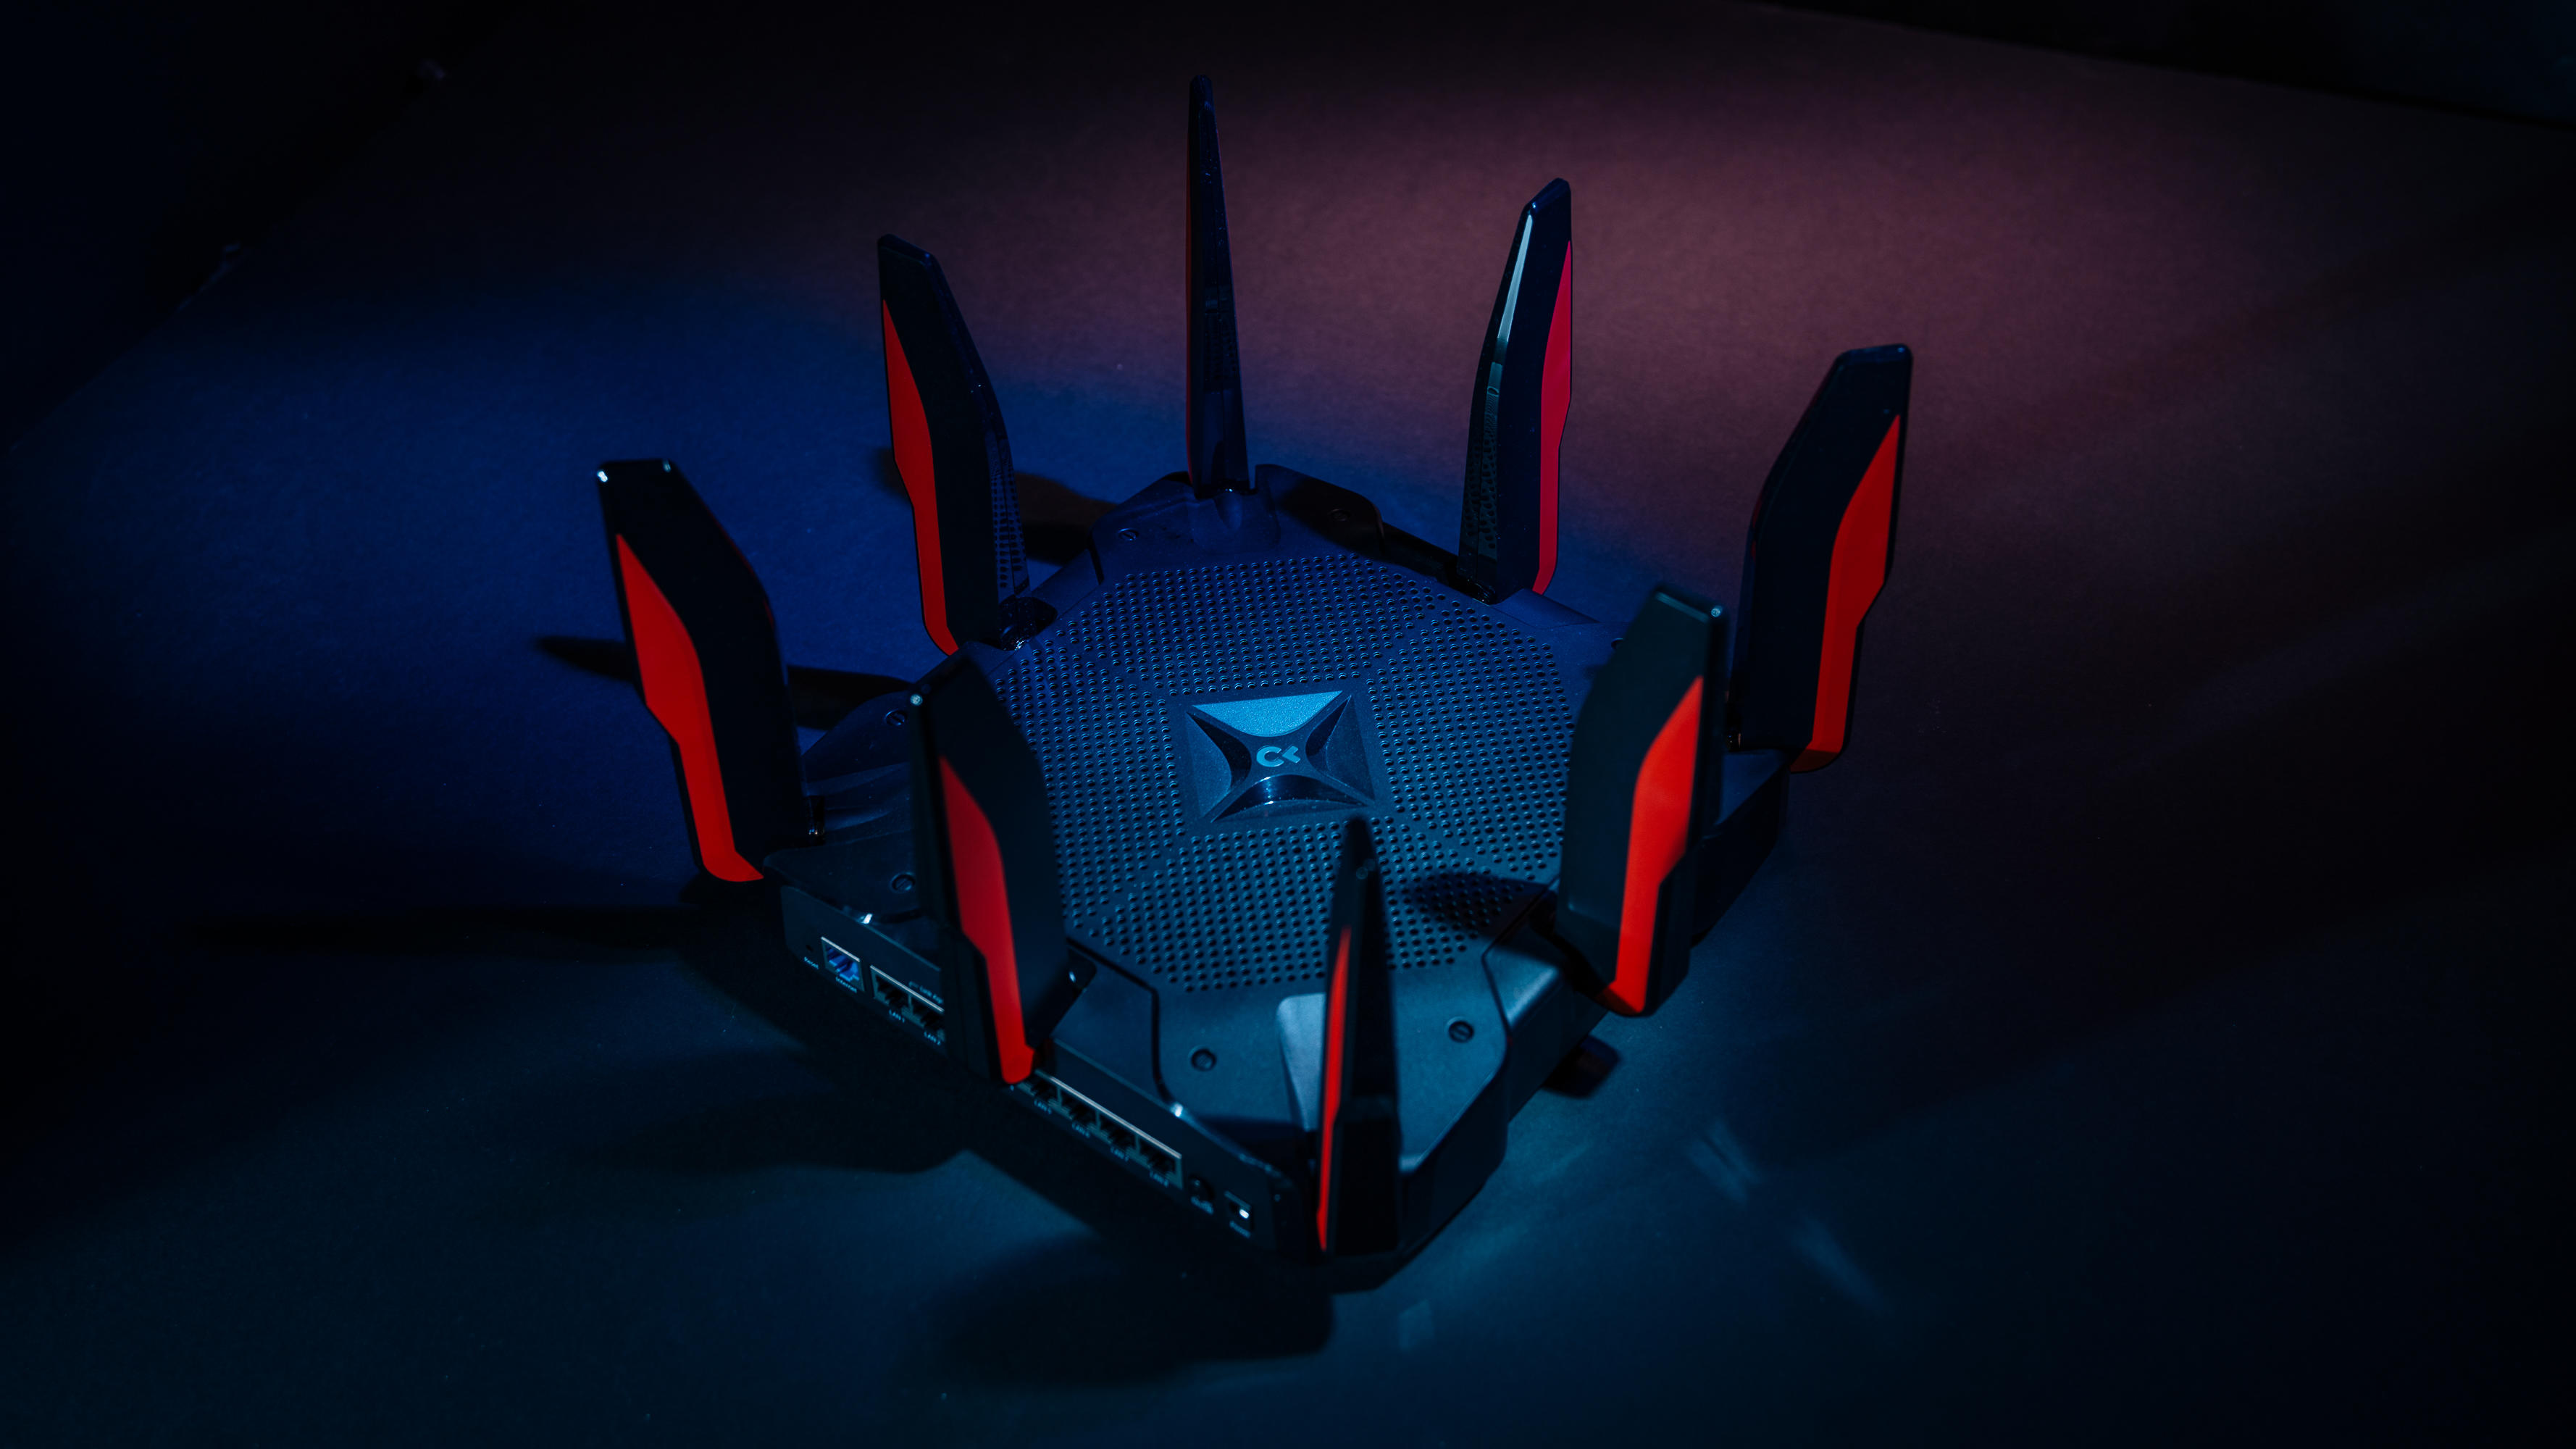 tp-link-ac5400-gaming-router-1